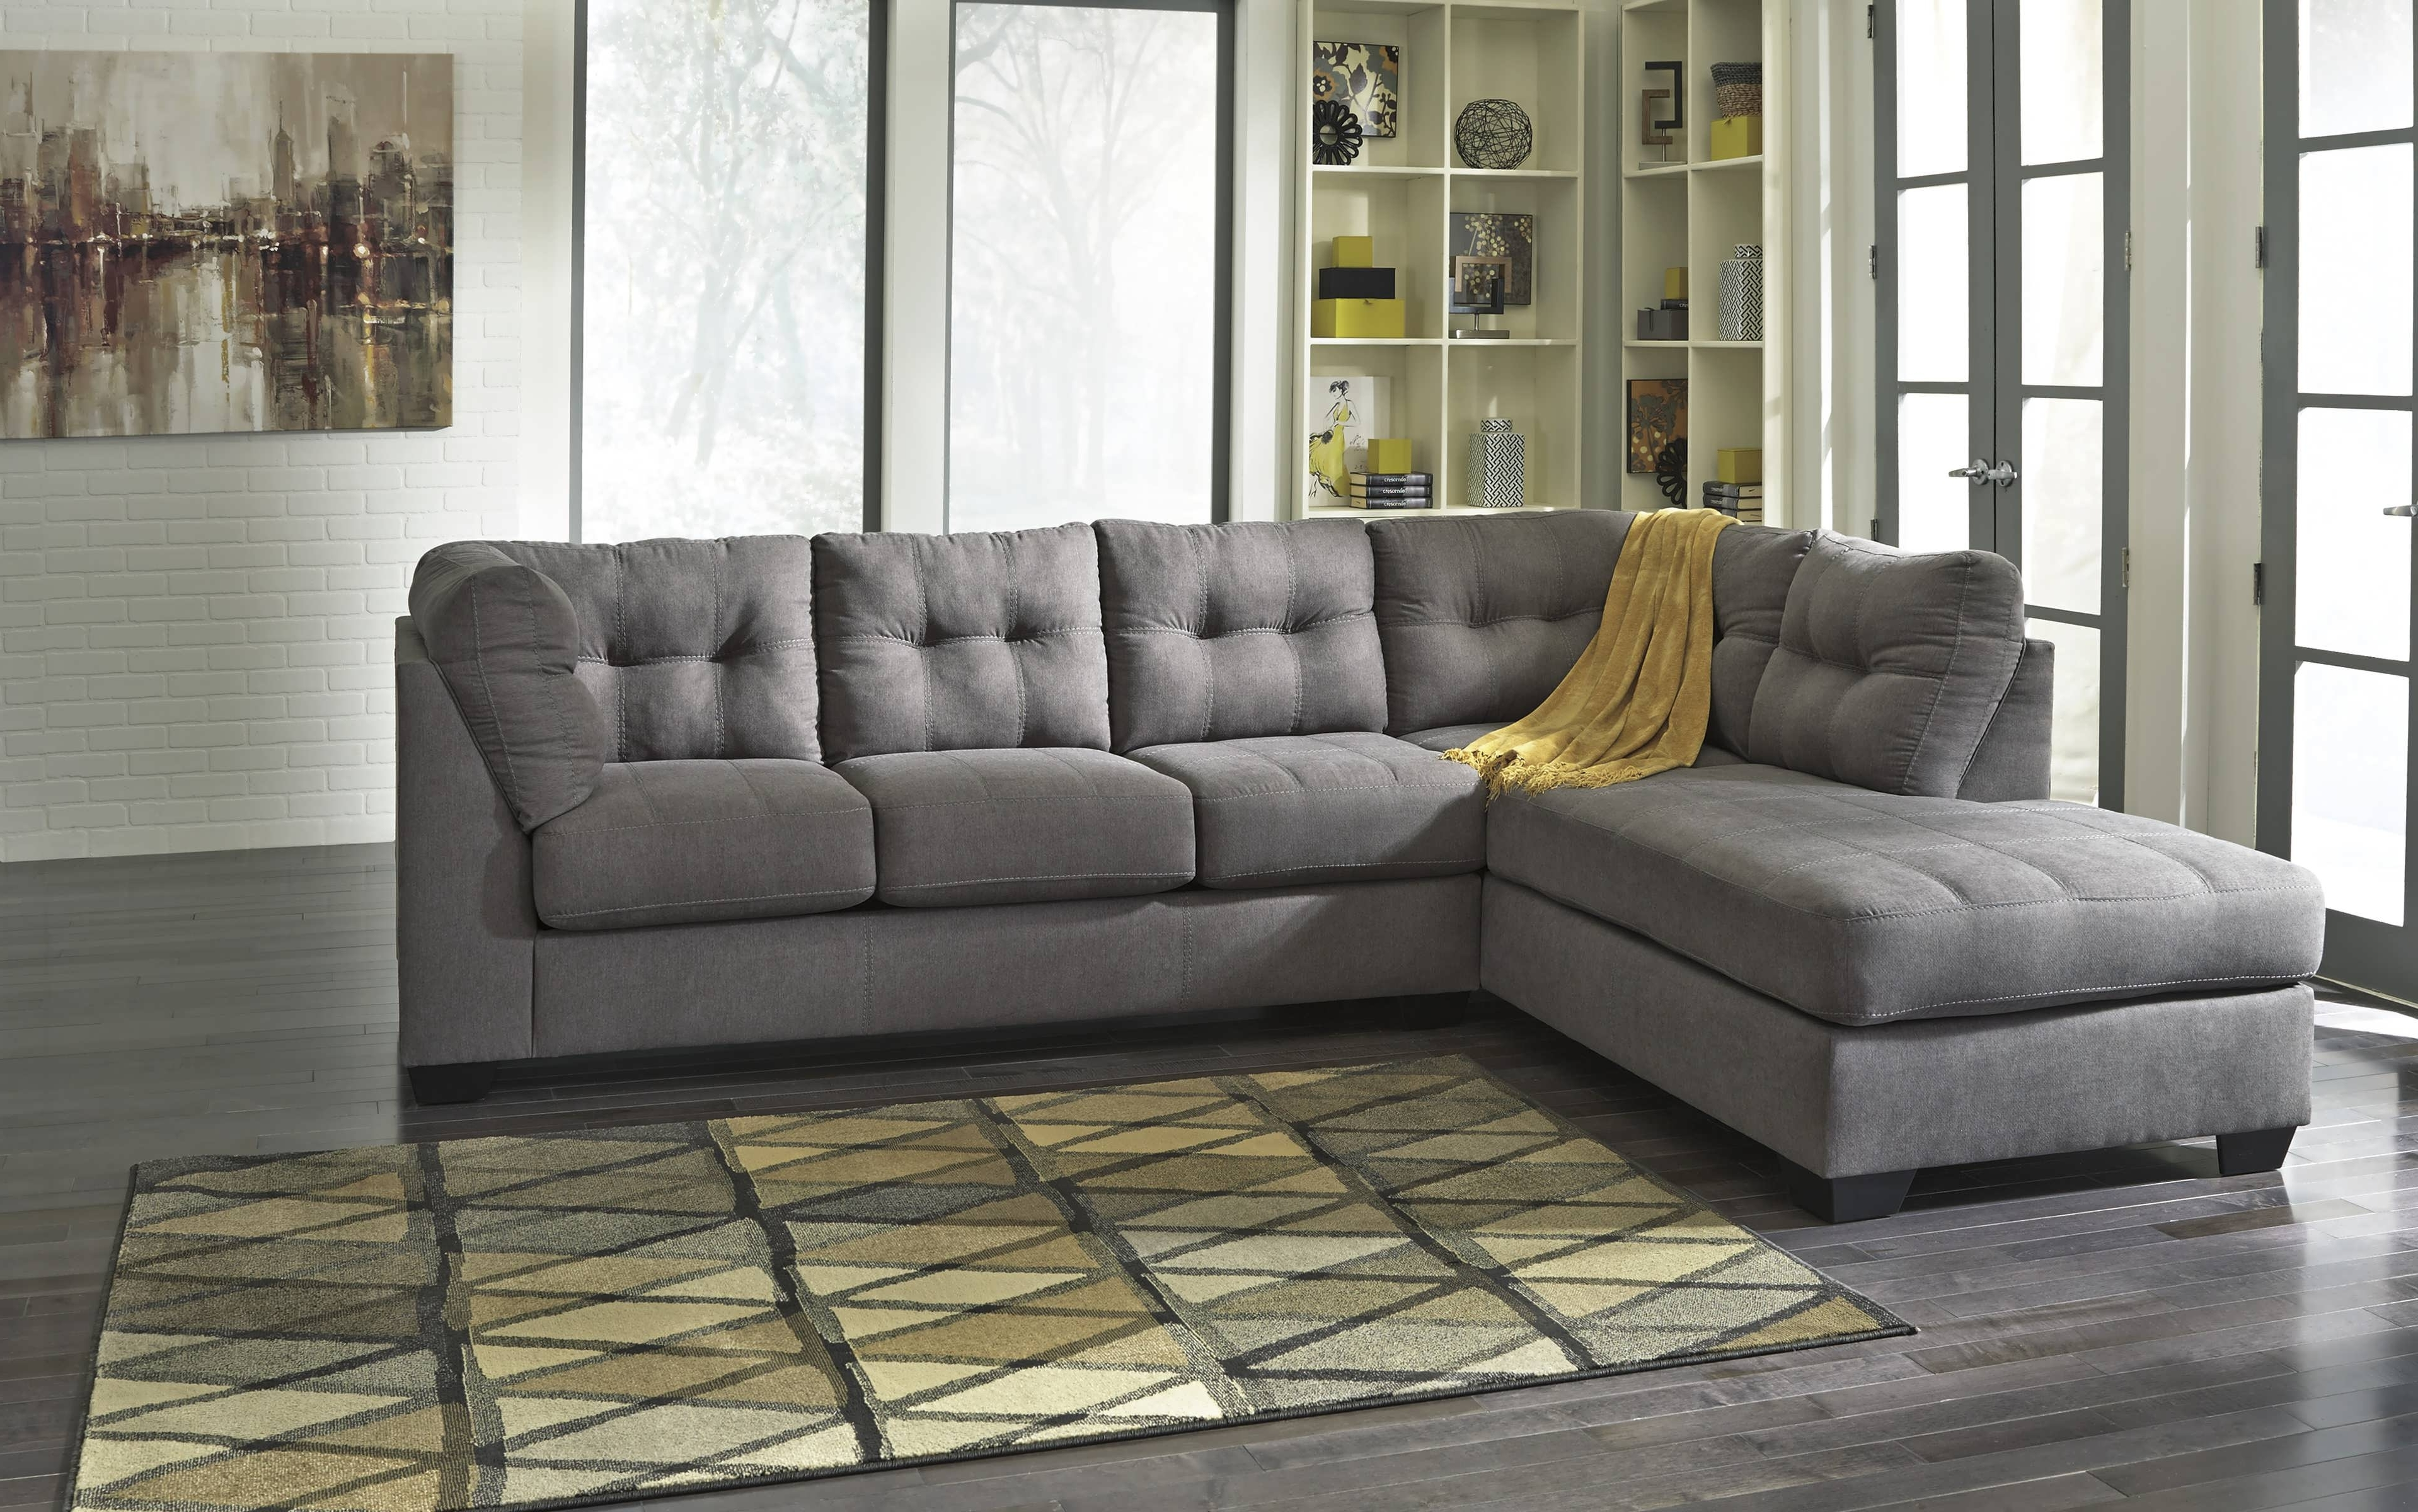 Well Liked Sofa : Small Sleeper Sofa Sectional Sleeper Sofa With Chaise Pertaining To Chaise Sectionals (View 11 of 15)